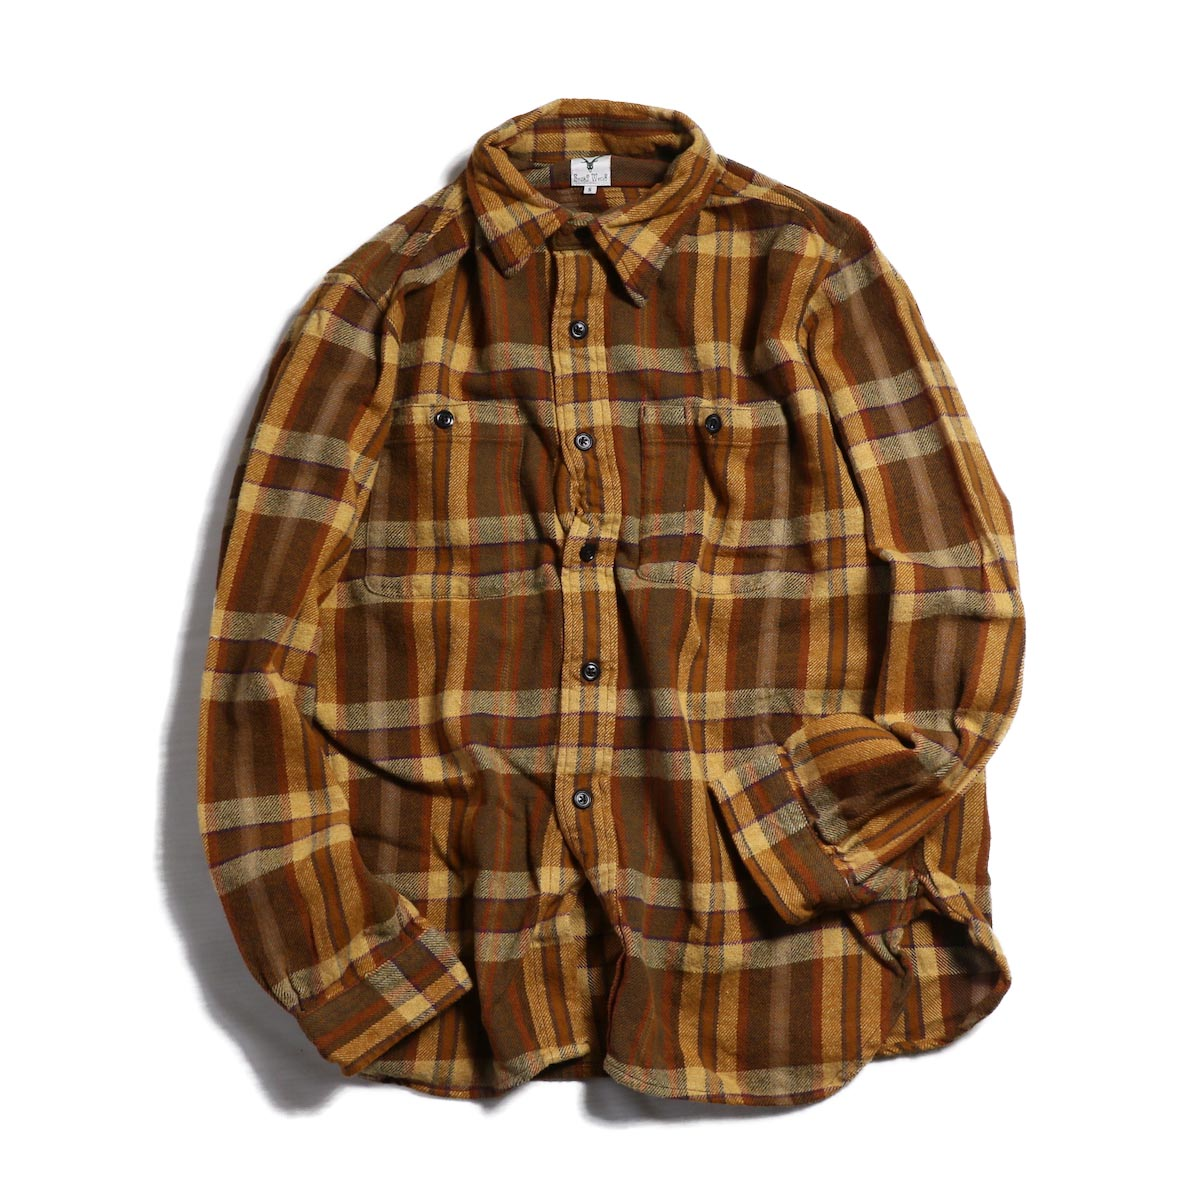 SOUTH2 WEST8 / Work Shirt Cotton Twill/Plaid -BROWN